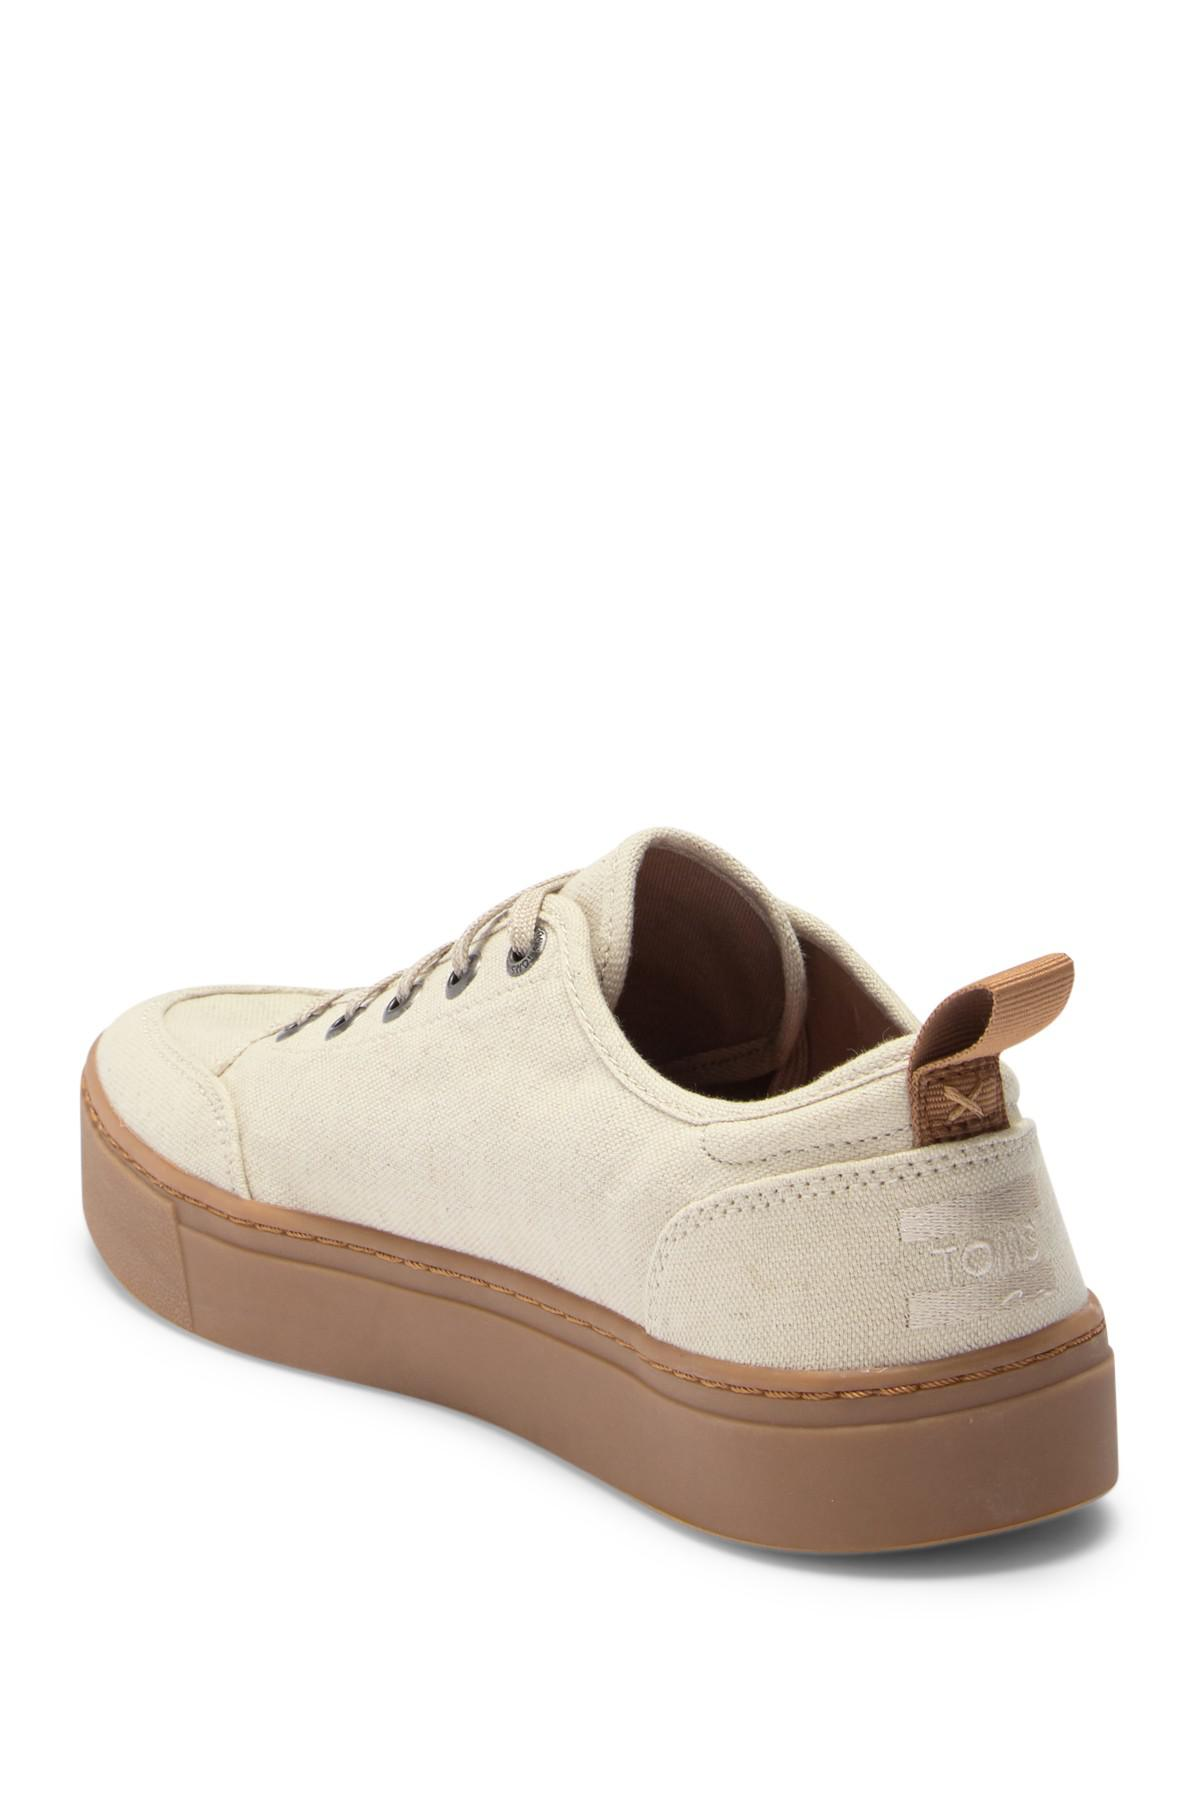 7c1cbcfe56e Lyst - TOMS Landen Canvas Sneaker in Natural for Men - Save 68%